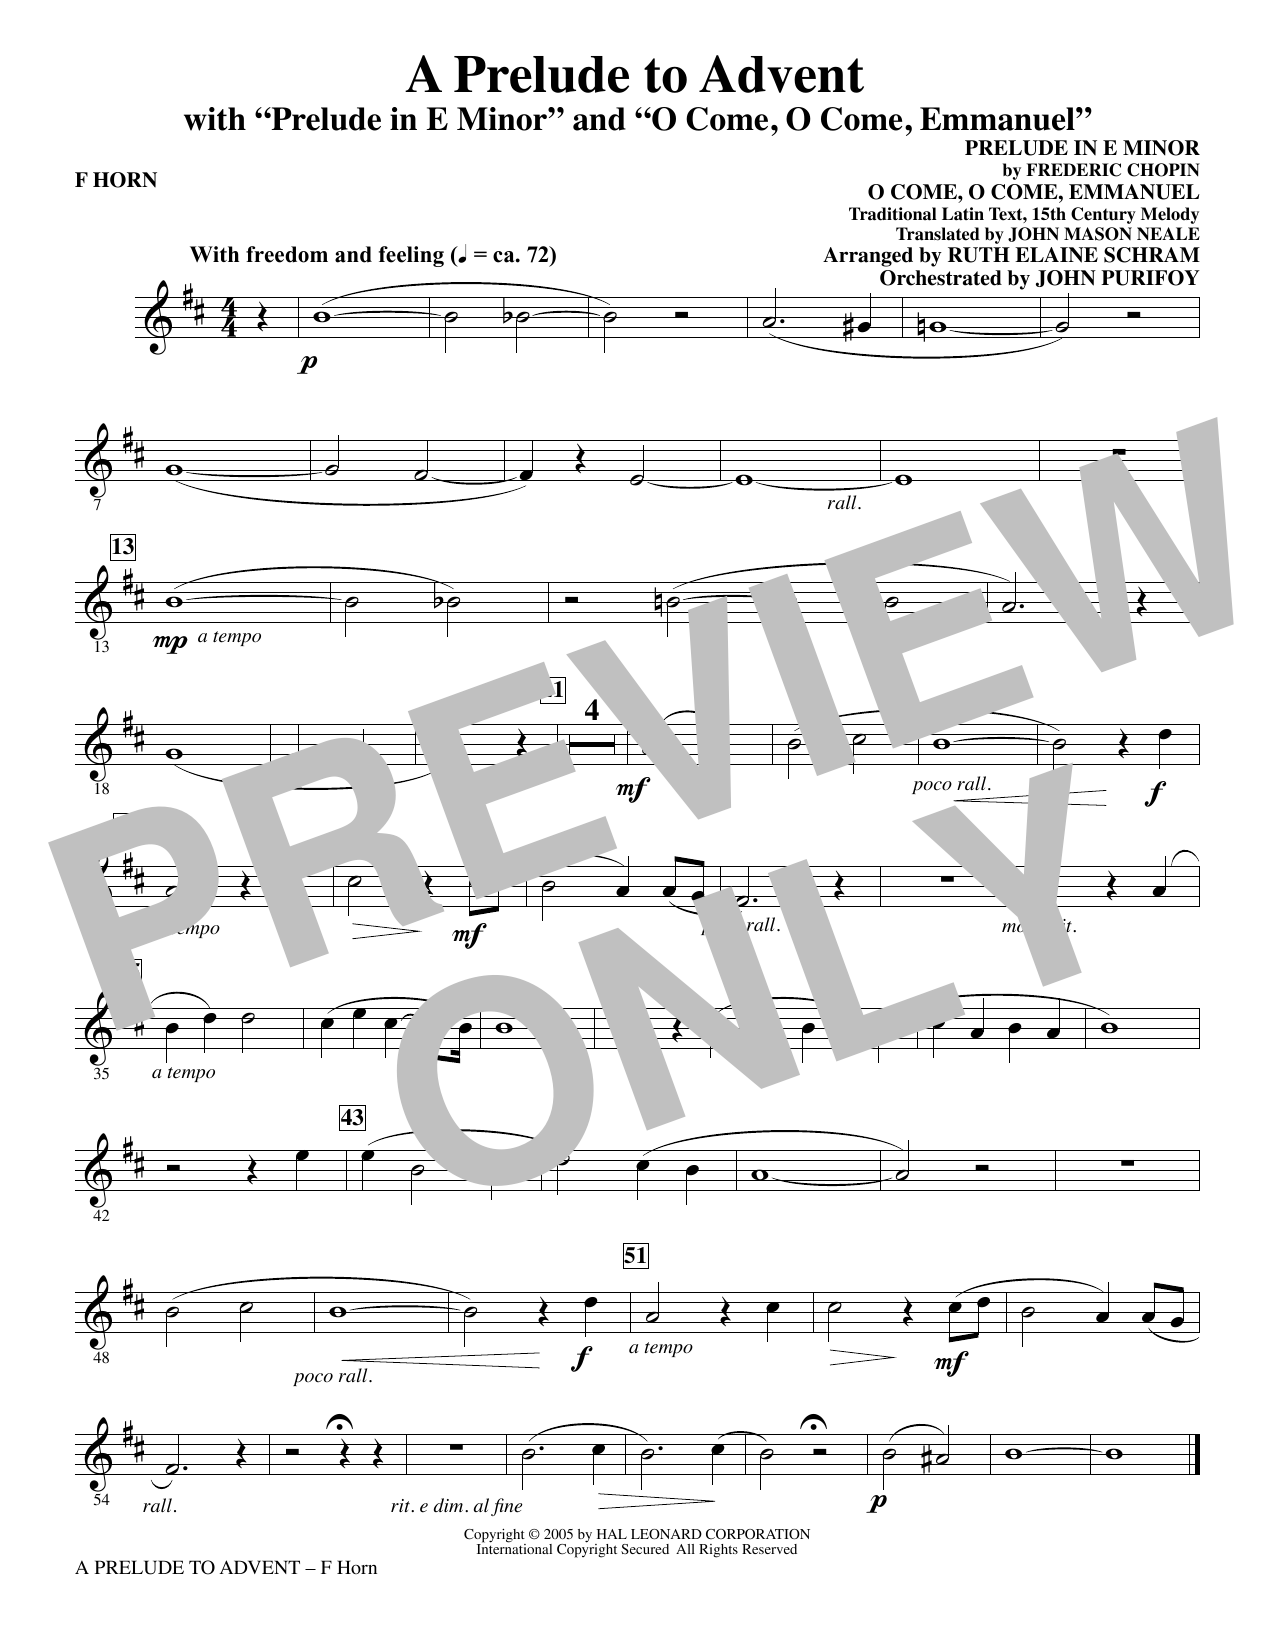 A Prelude To Advent (with Prelude In E Minor and O Come, O Come, Emmanuel) - F Horn Sheet Music